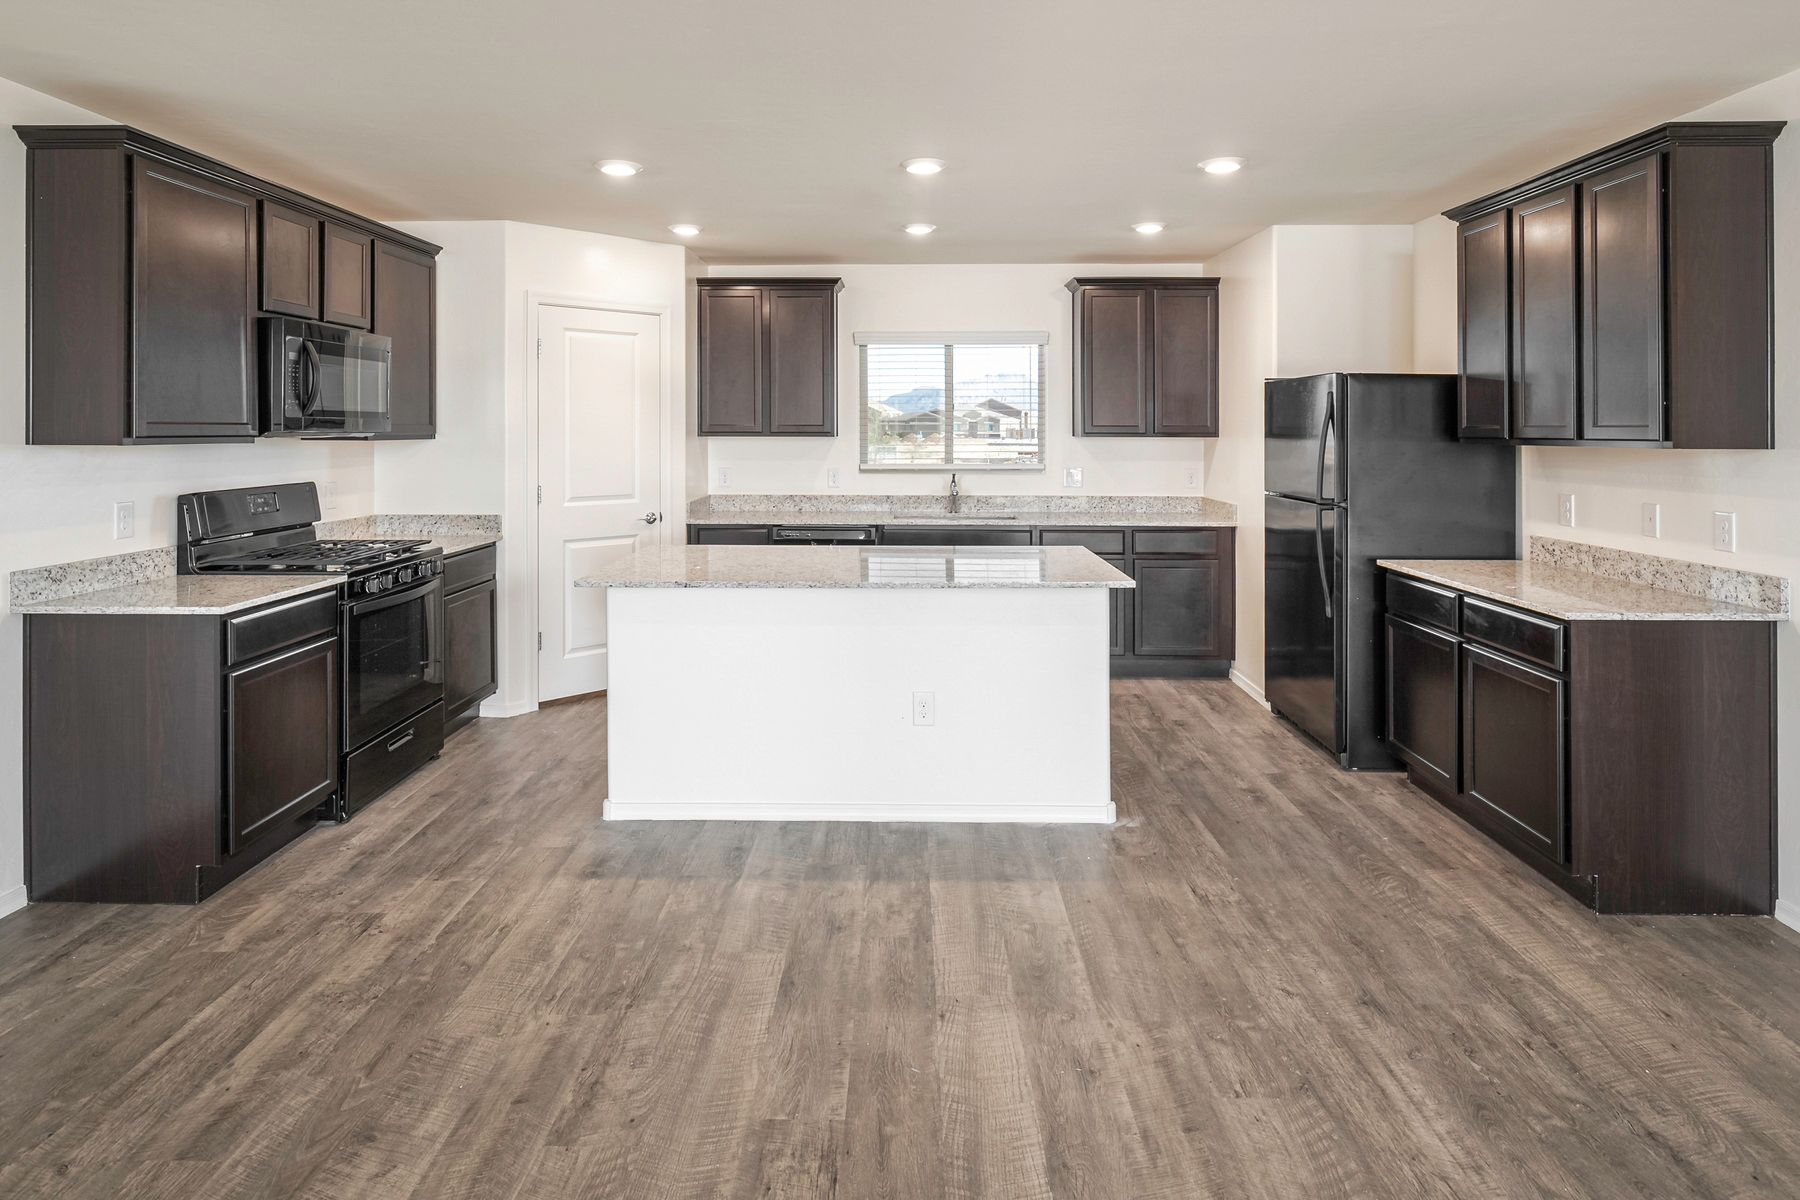 Kitchen featured in the Willow By LGI Homes in Tucson, AZ